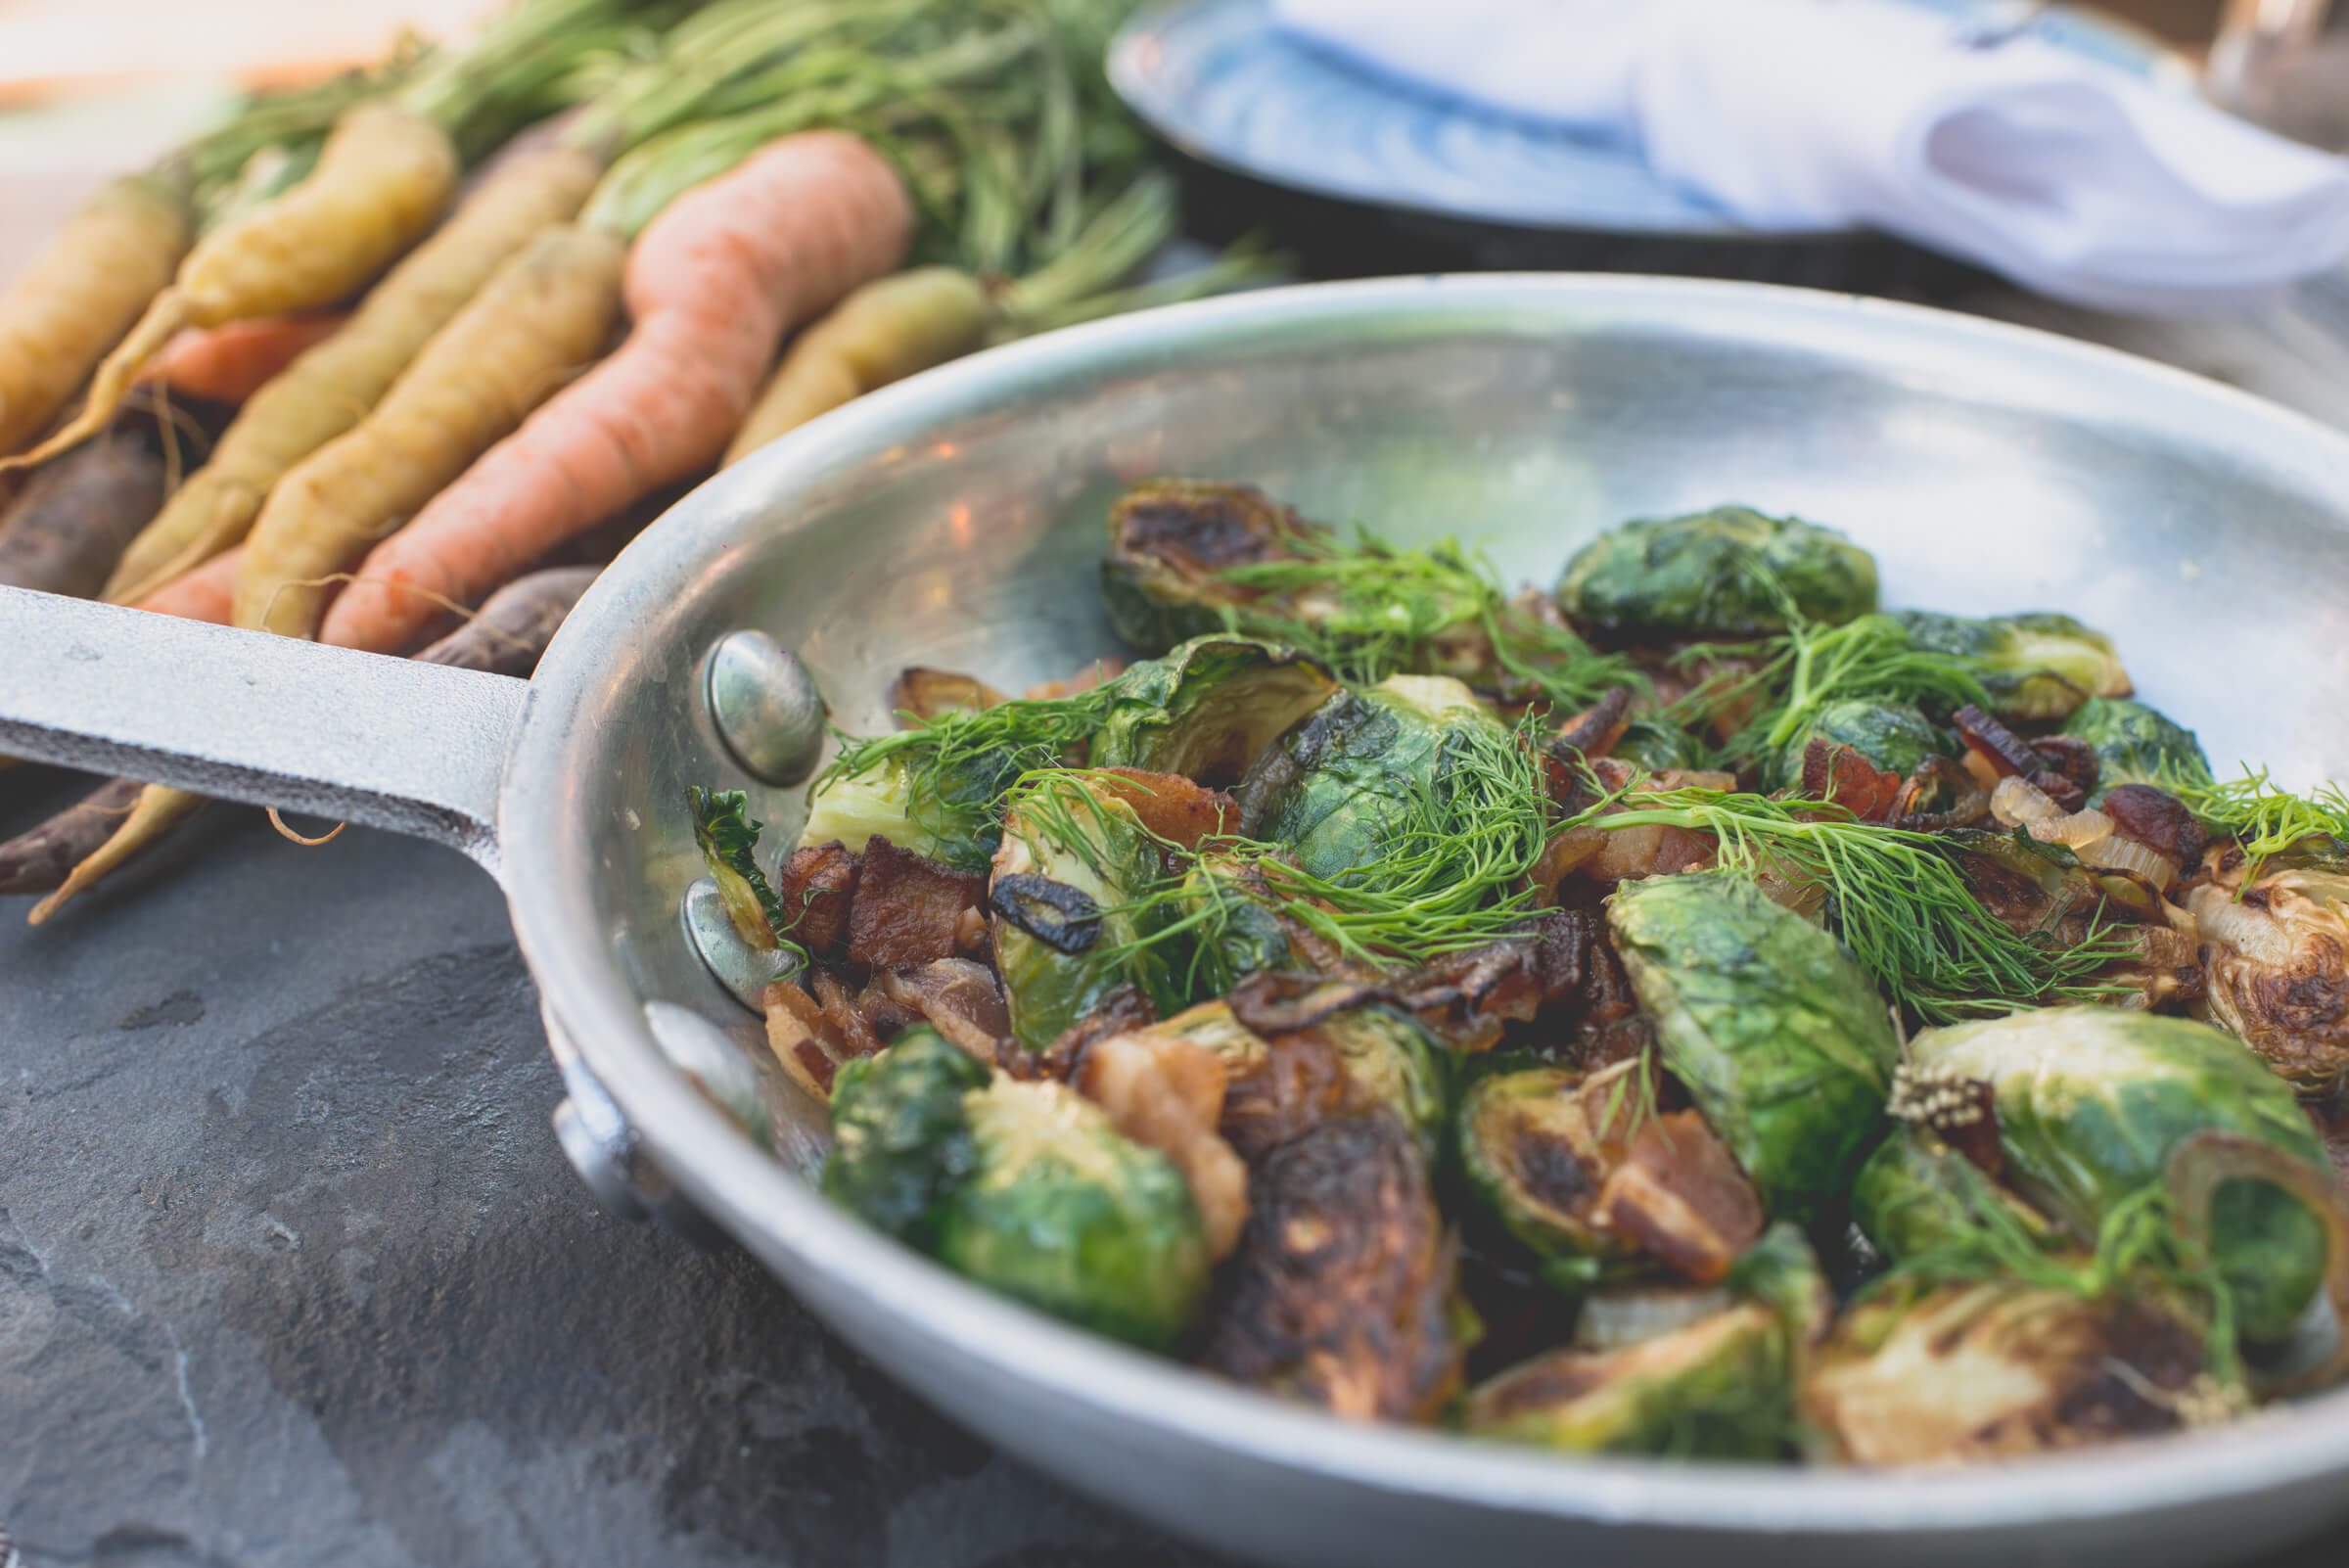 brussel sprouts,thyme, and carrots sautee